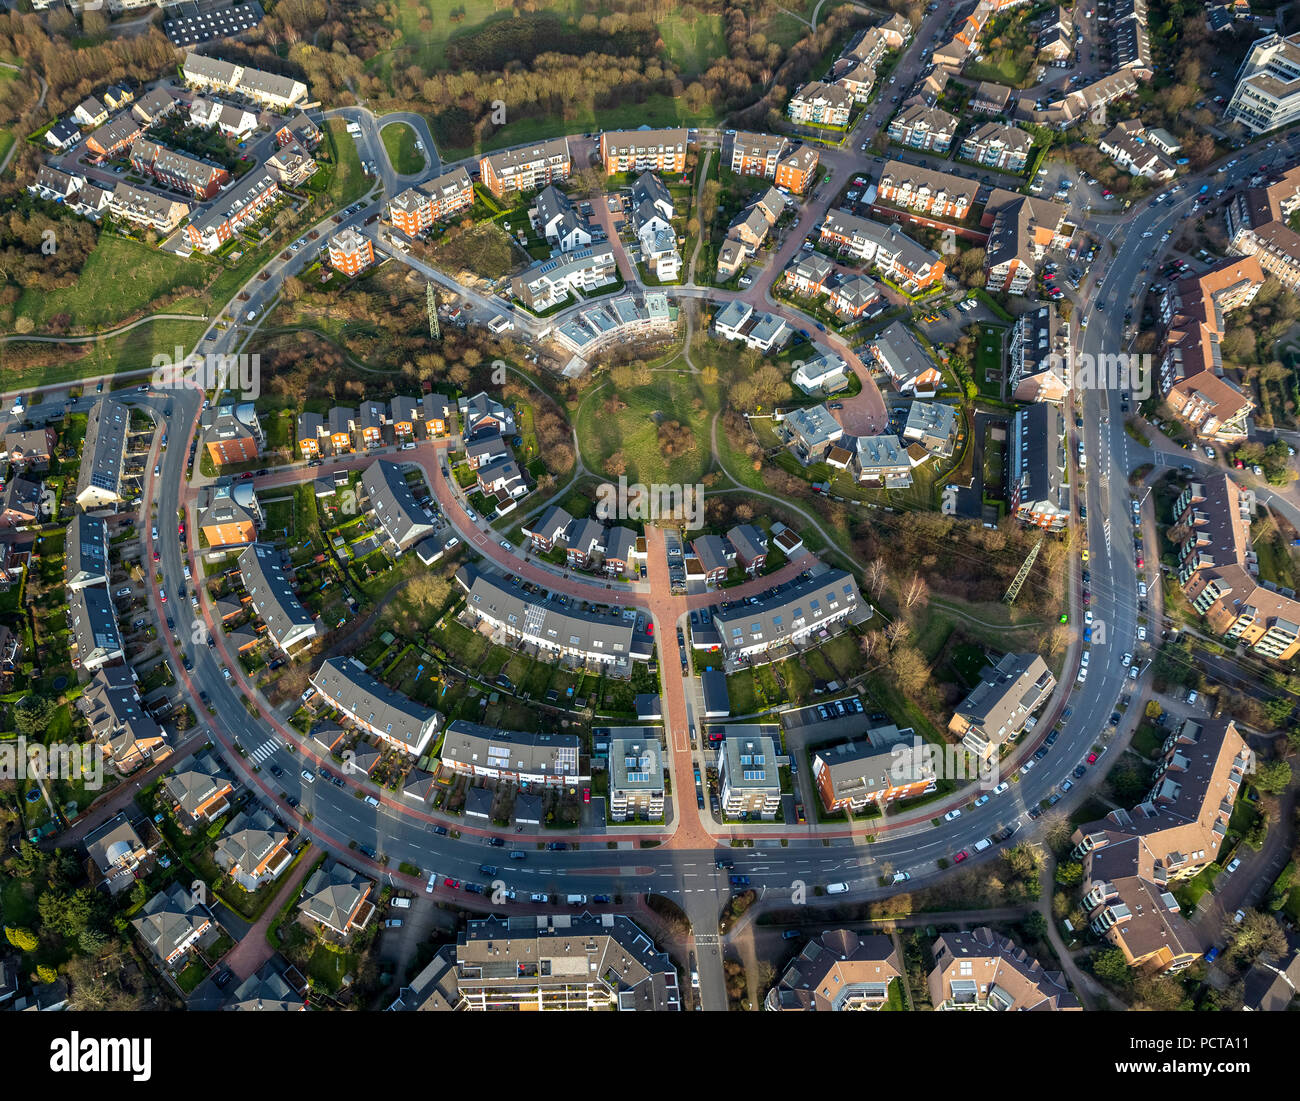 Aerial photo, Saarn and Saarner Mitte, concentric development, urban planning, Mülheim, Ruhr area - Stock Image